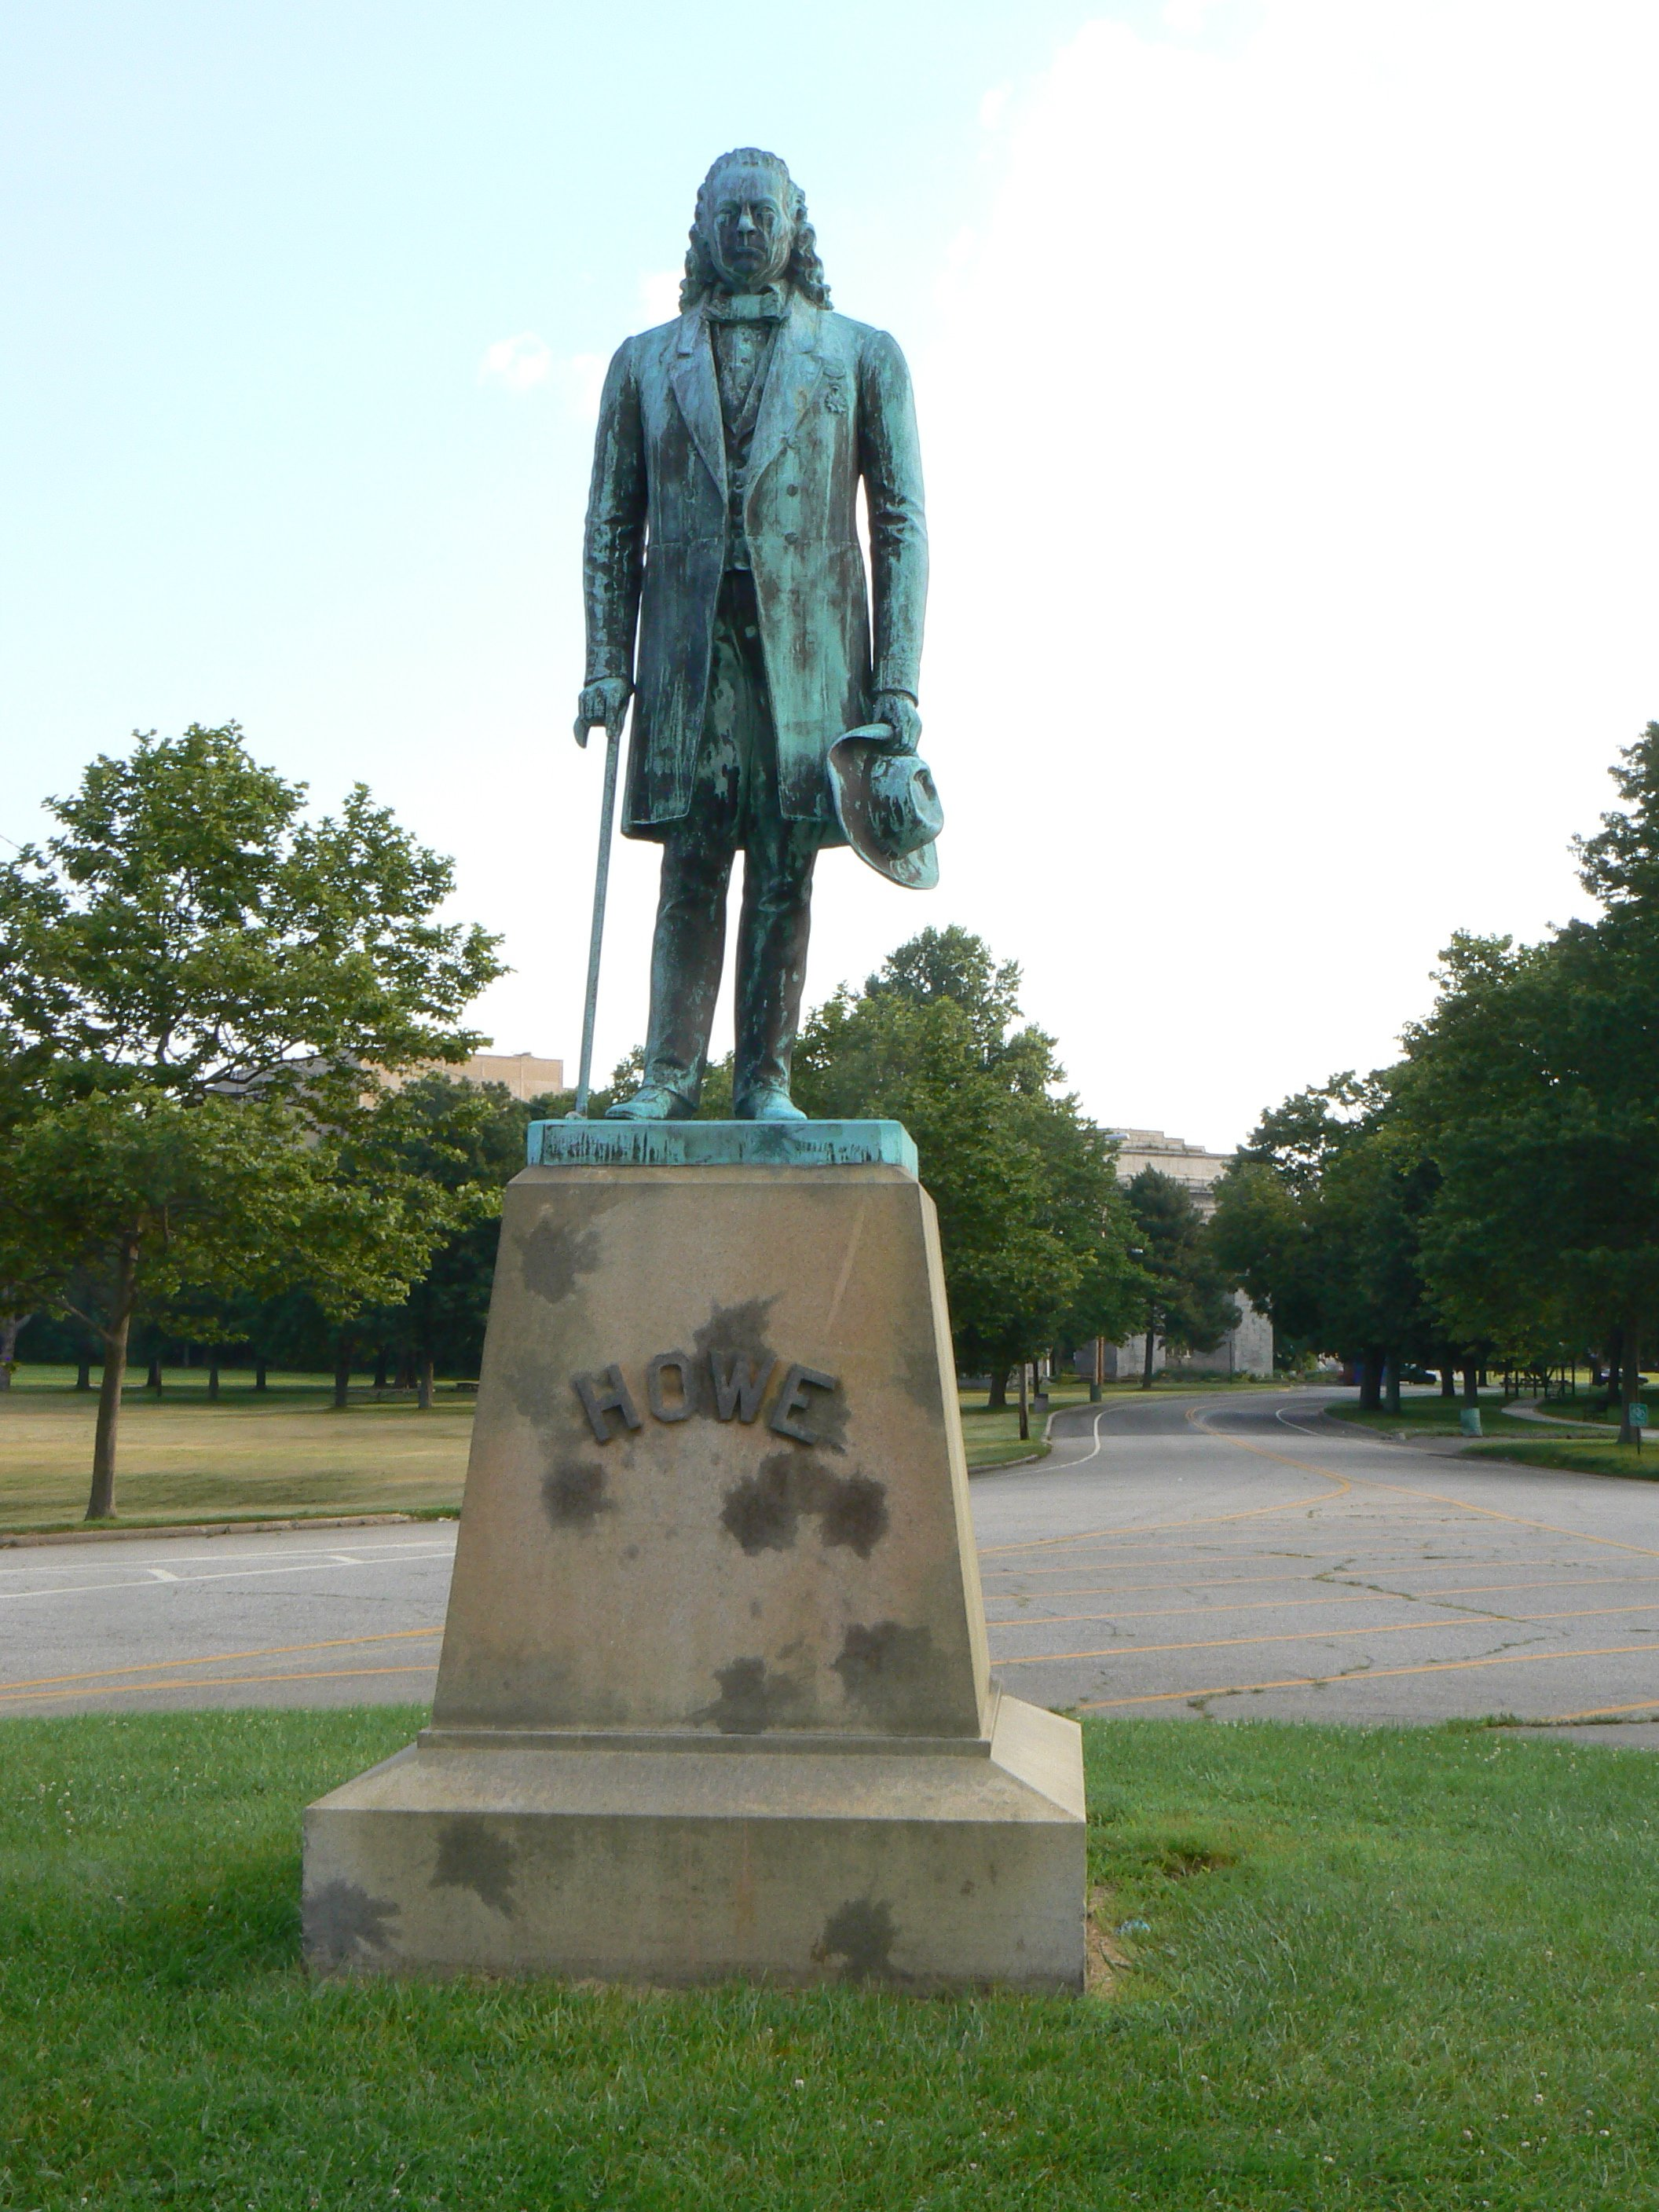 Statue dedicated to Elias Howe Jr. ,  sculpted by Salathiel Ellis (1873) Part of the 17th Connecticut Volunteer Infantry in the Union Army Company D during the American Civil War.   Located on Howe Drive. Seaside Park Bridgeport, Ct.